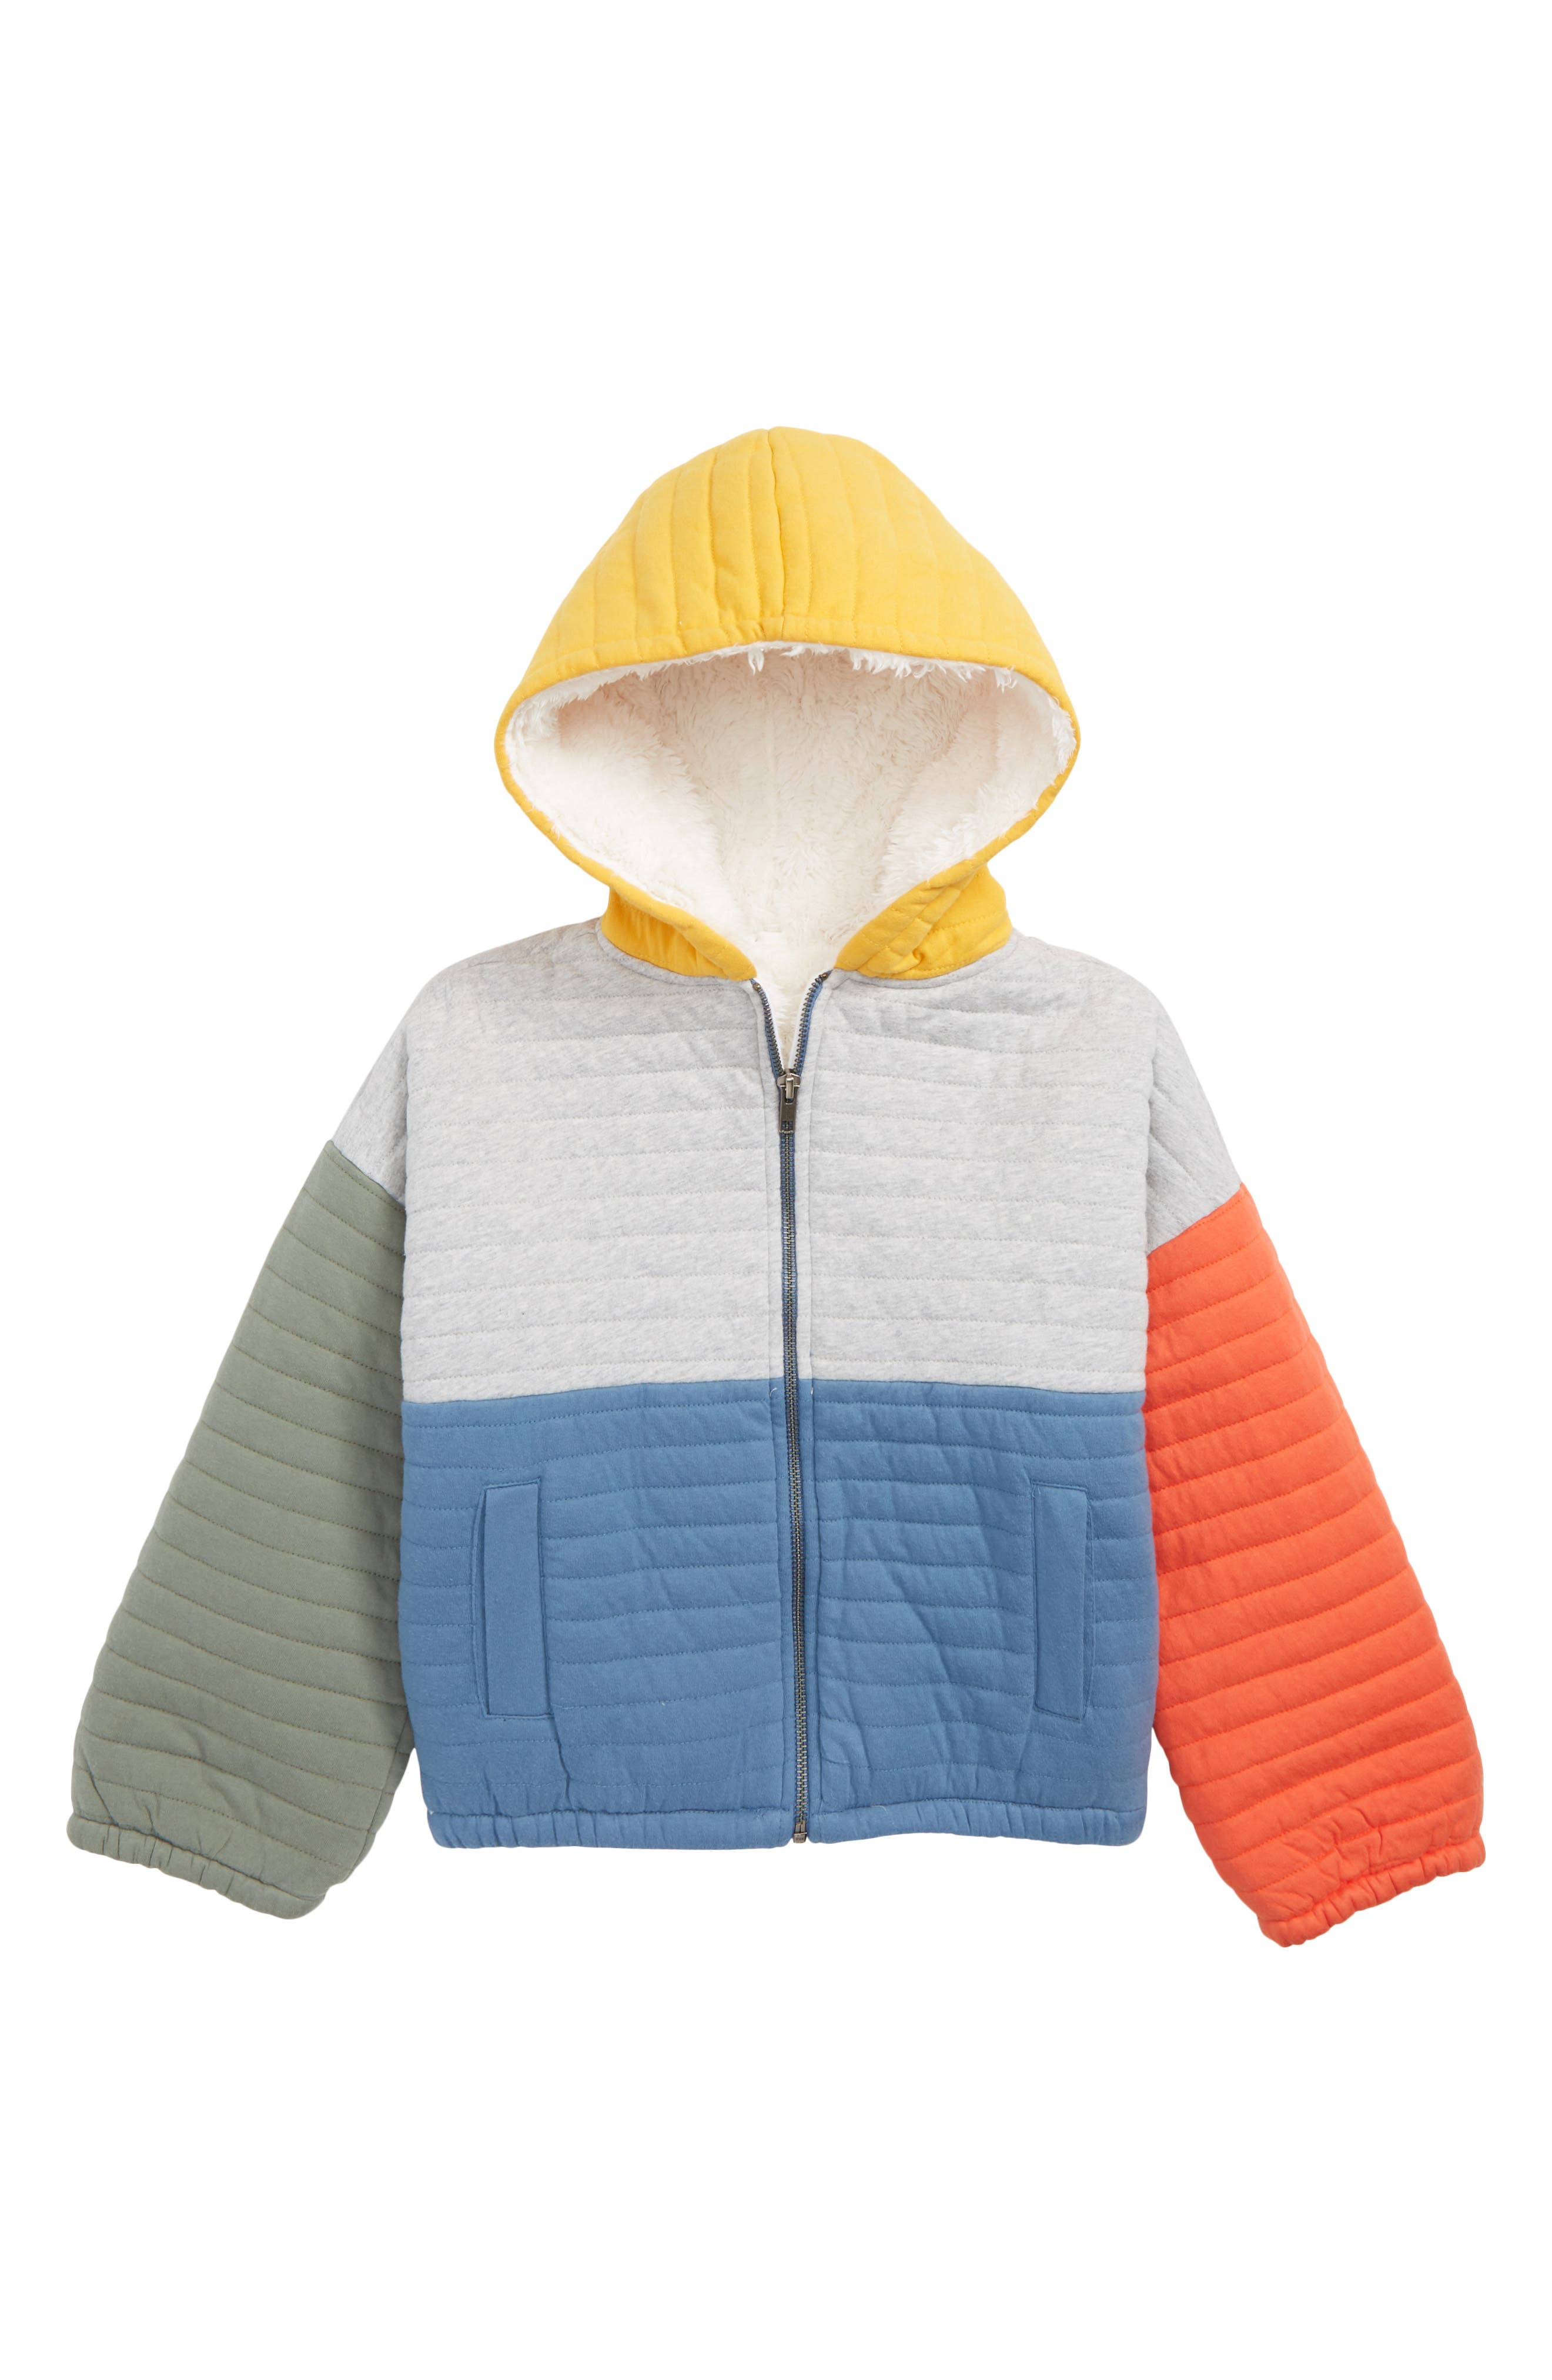 Quilted Jacket with Faux Fur Lining,                             Main thumbnail 1, color,                             GREY ASH HEATHER- BLUE